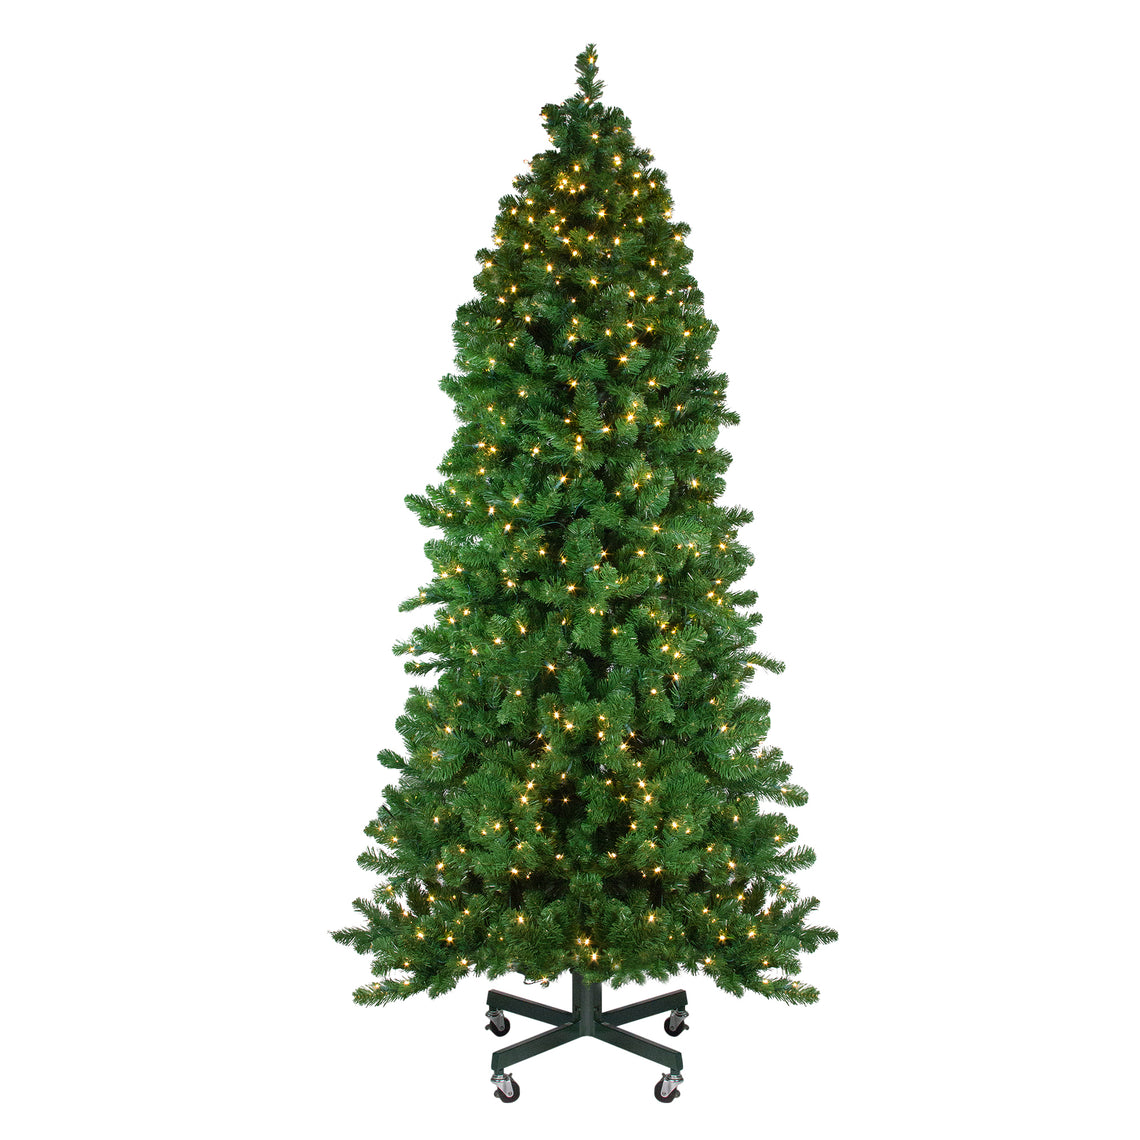 7.5' Pre-Lit Olympia Pine Artificial Christmas Tree - Warm White LED Lights